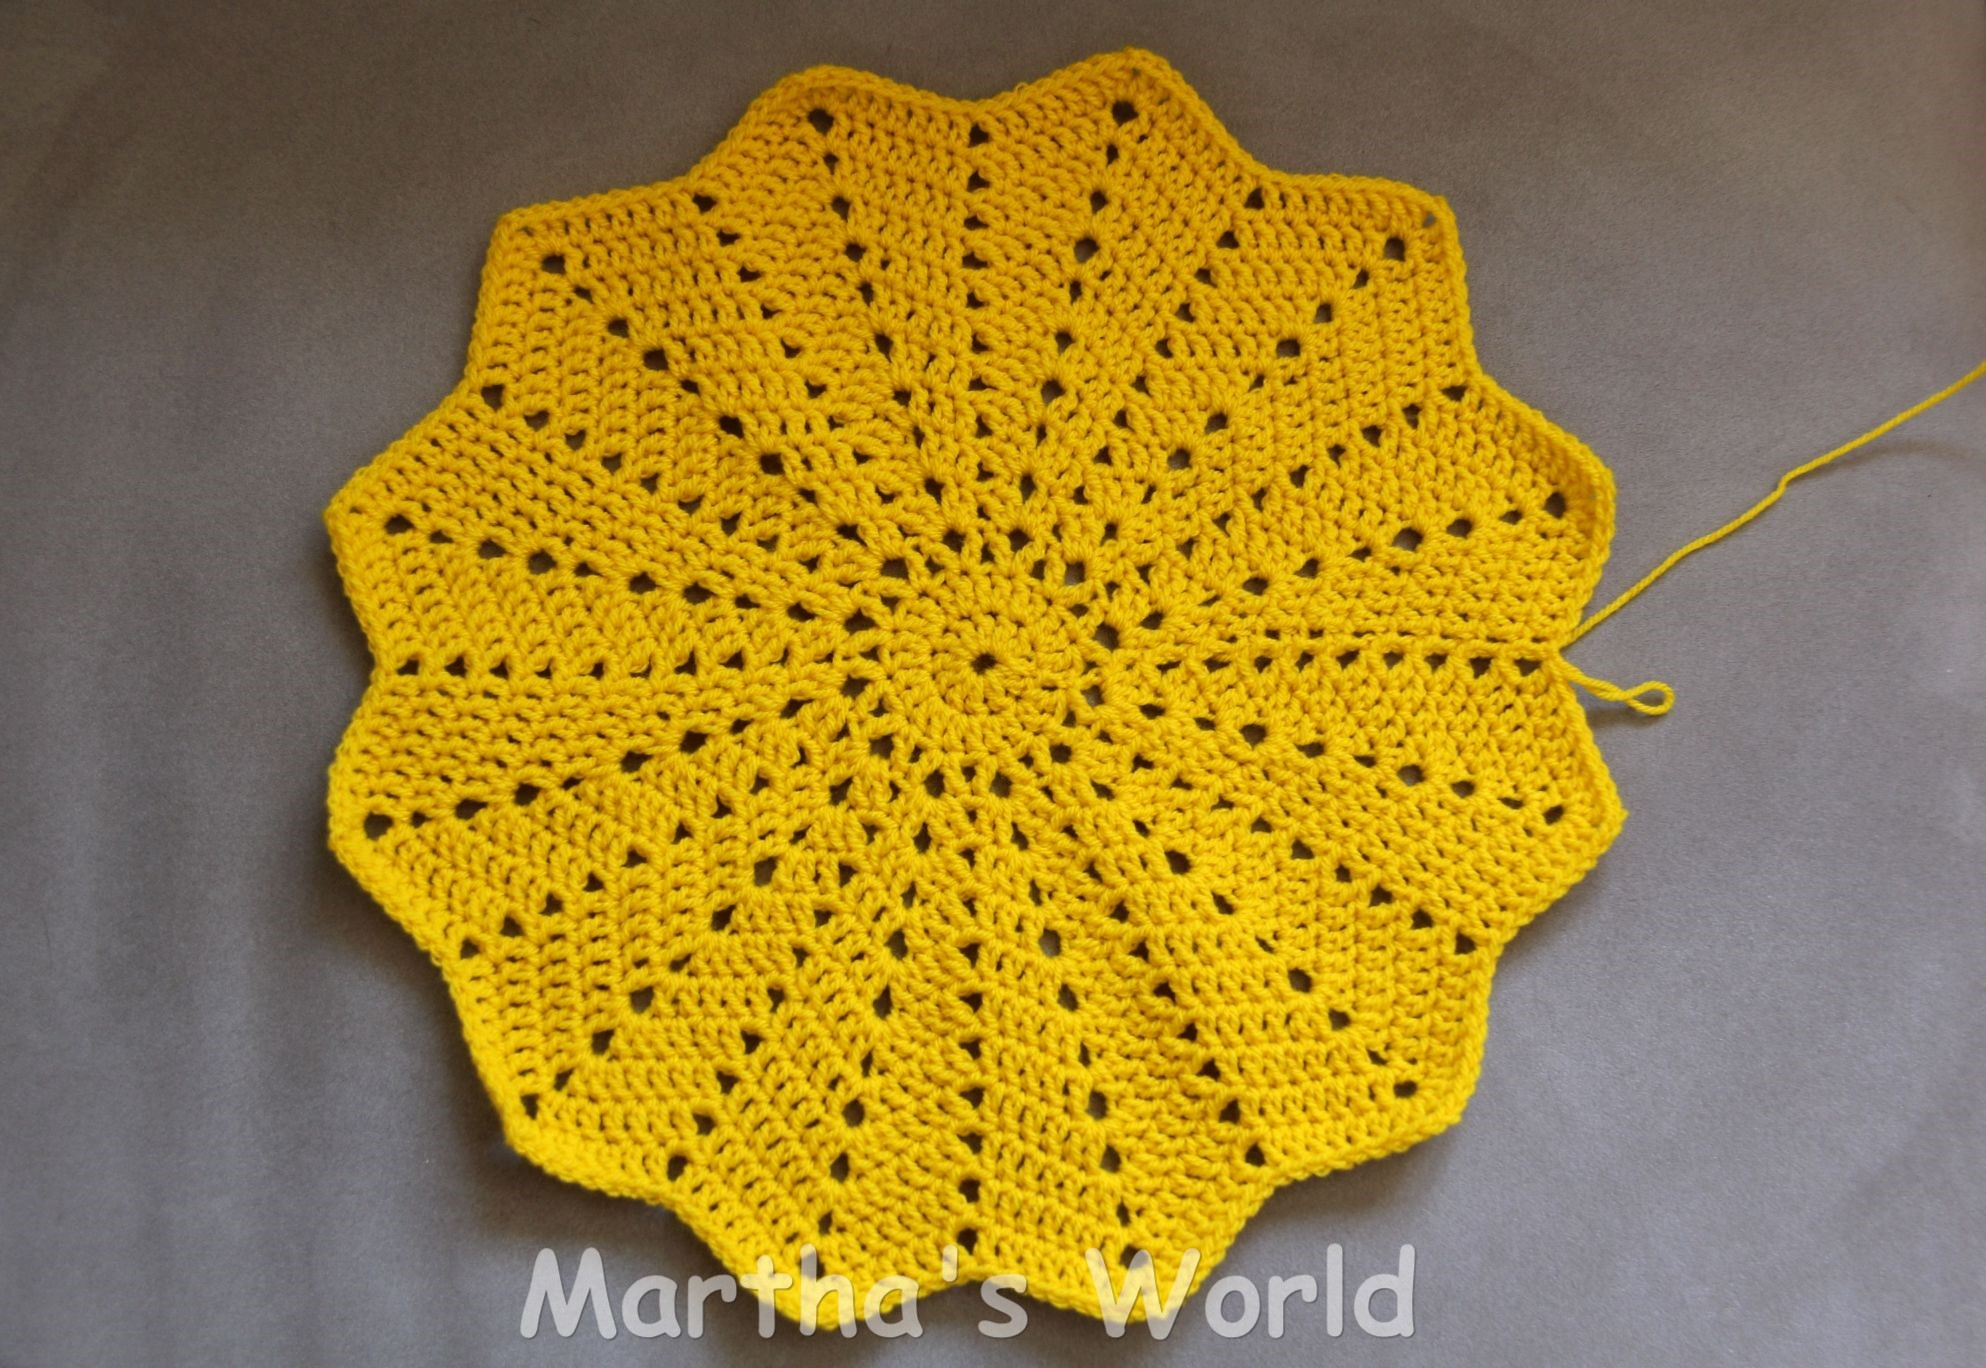 My first round ripple or how i crocheted sunshine marthas world nice and flat round ripple crocheted sunshine ccuart Images